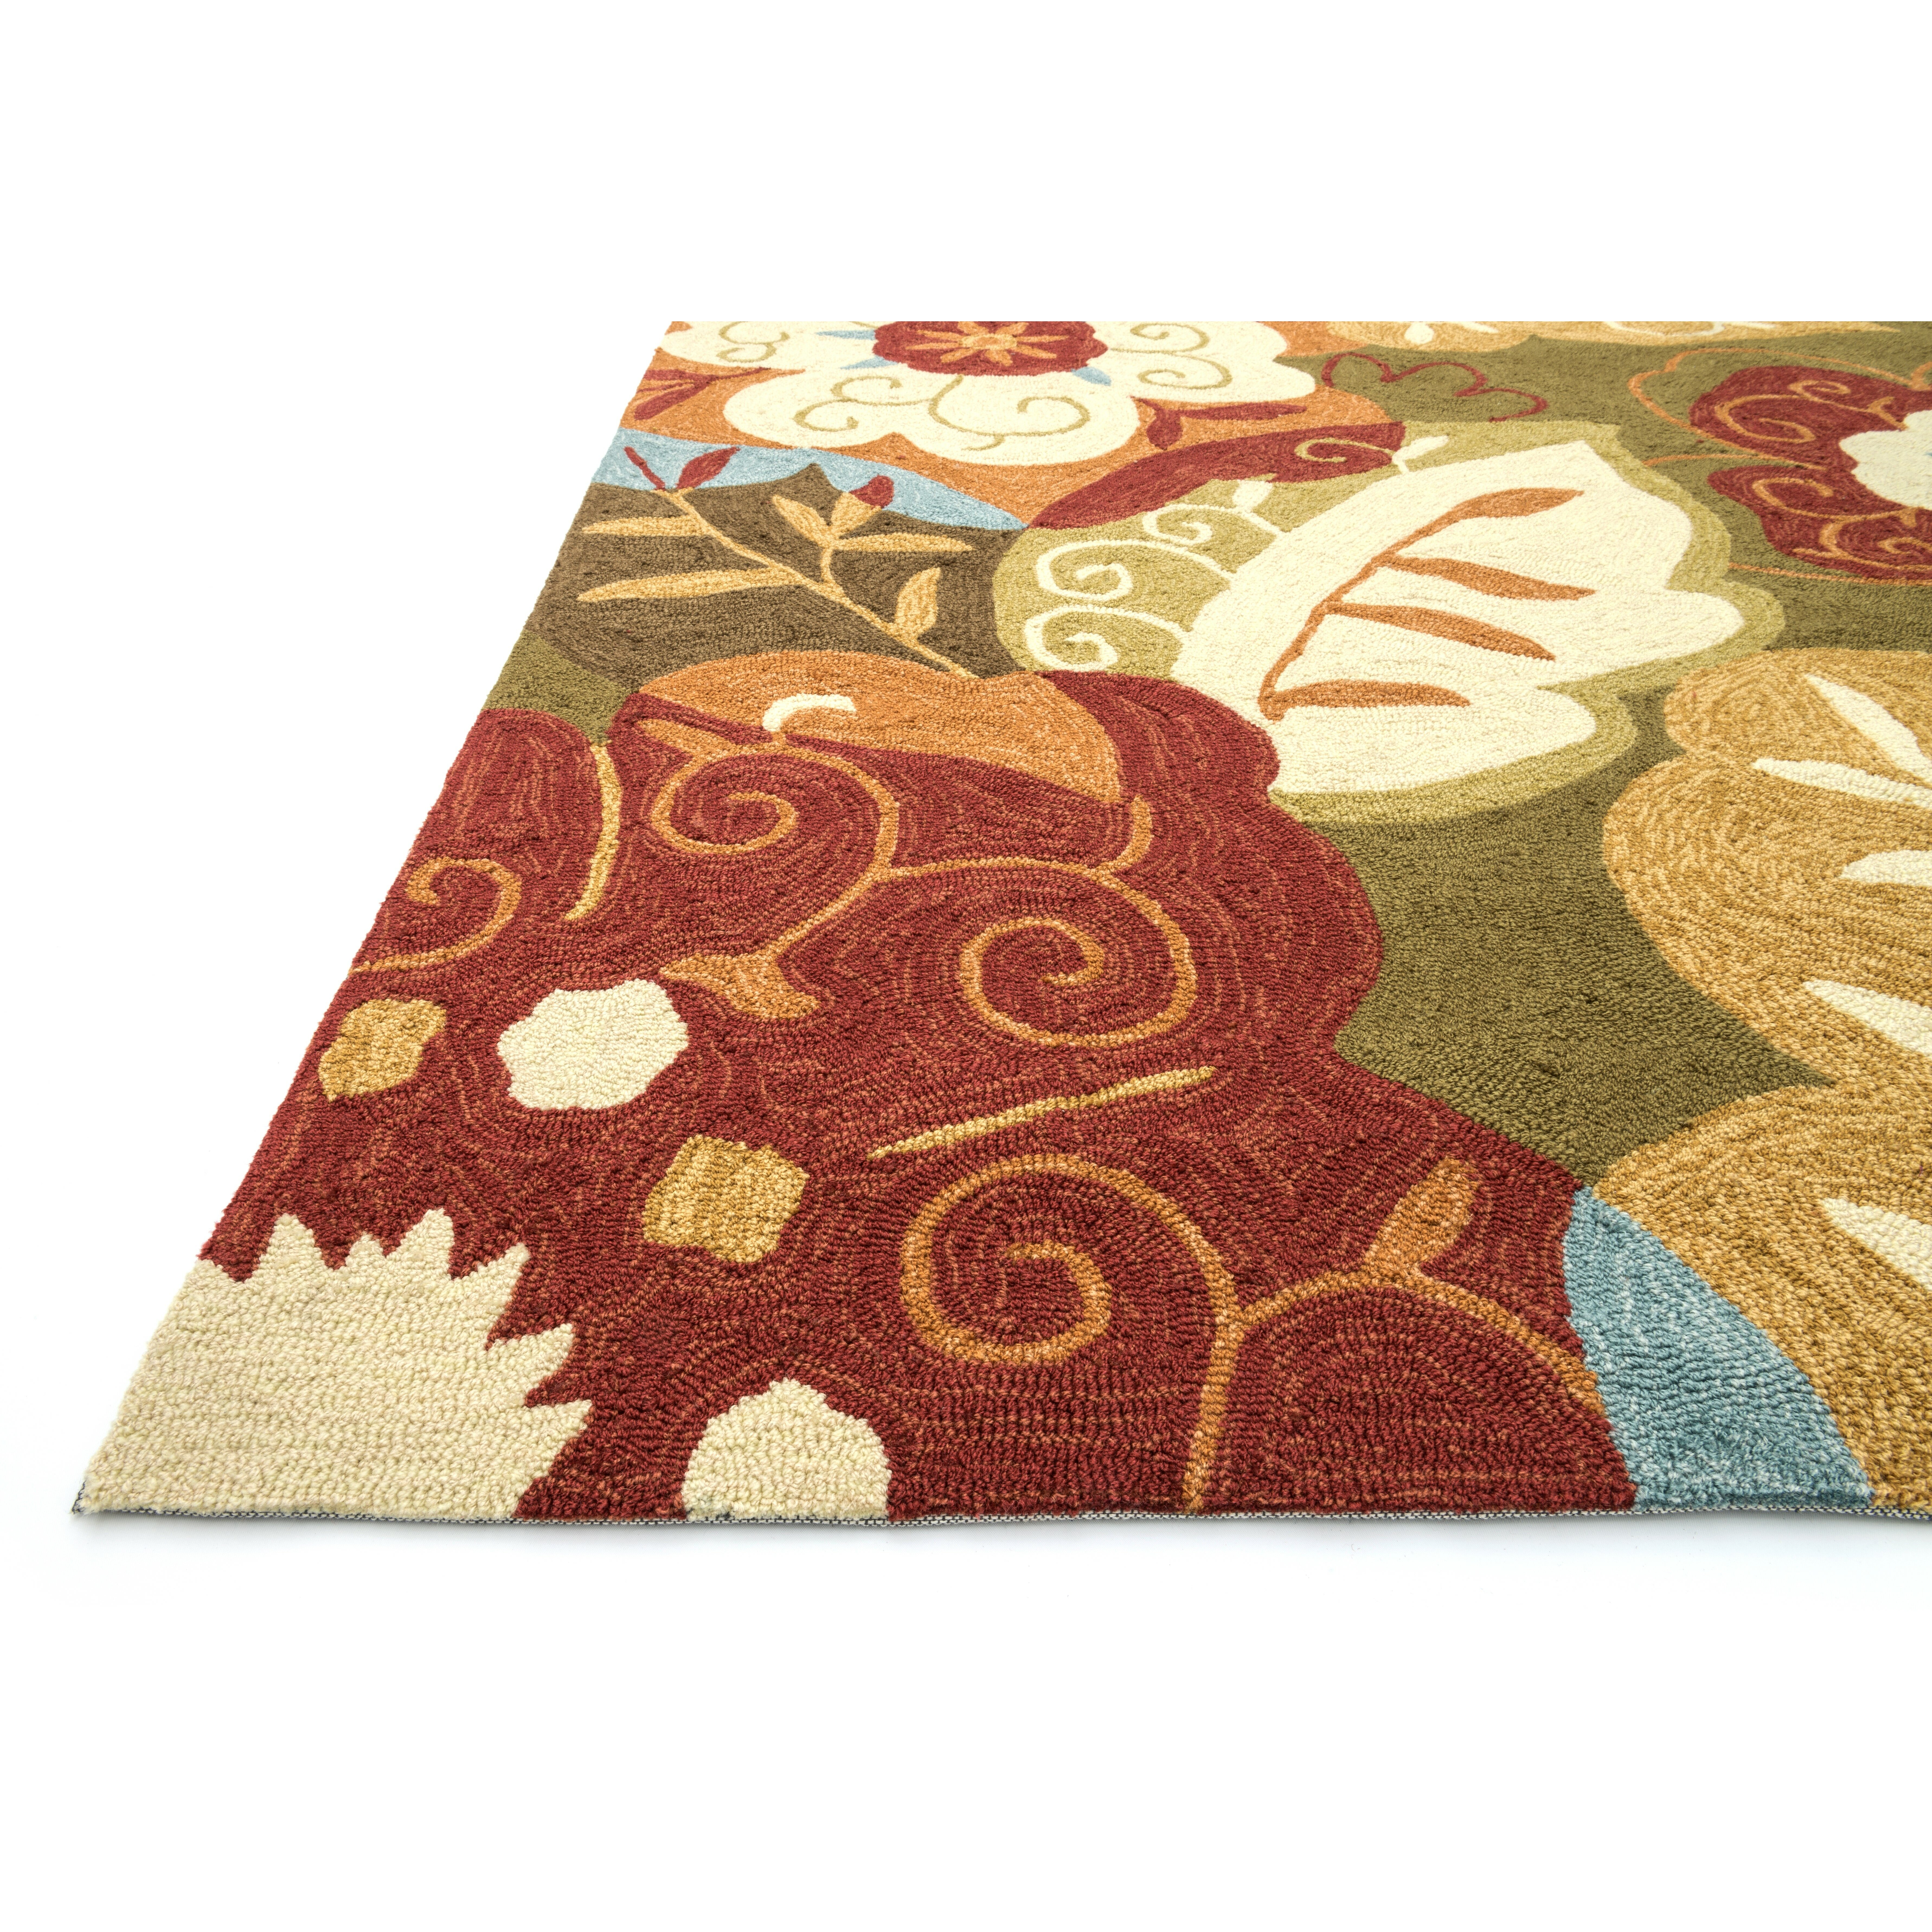 The conestoga trading co hand hooked green red area rug for The rug company rugs